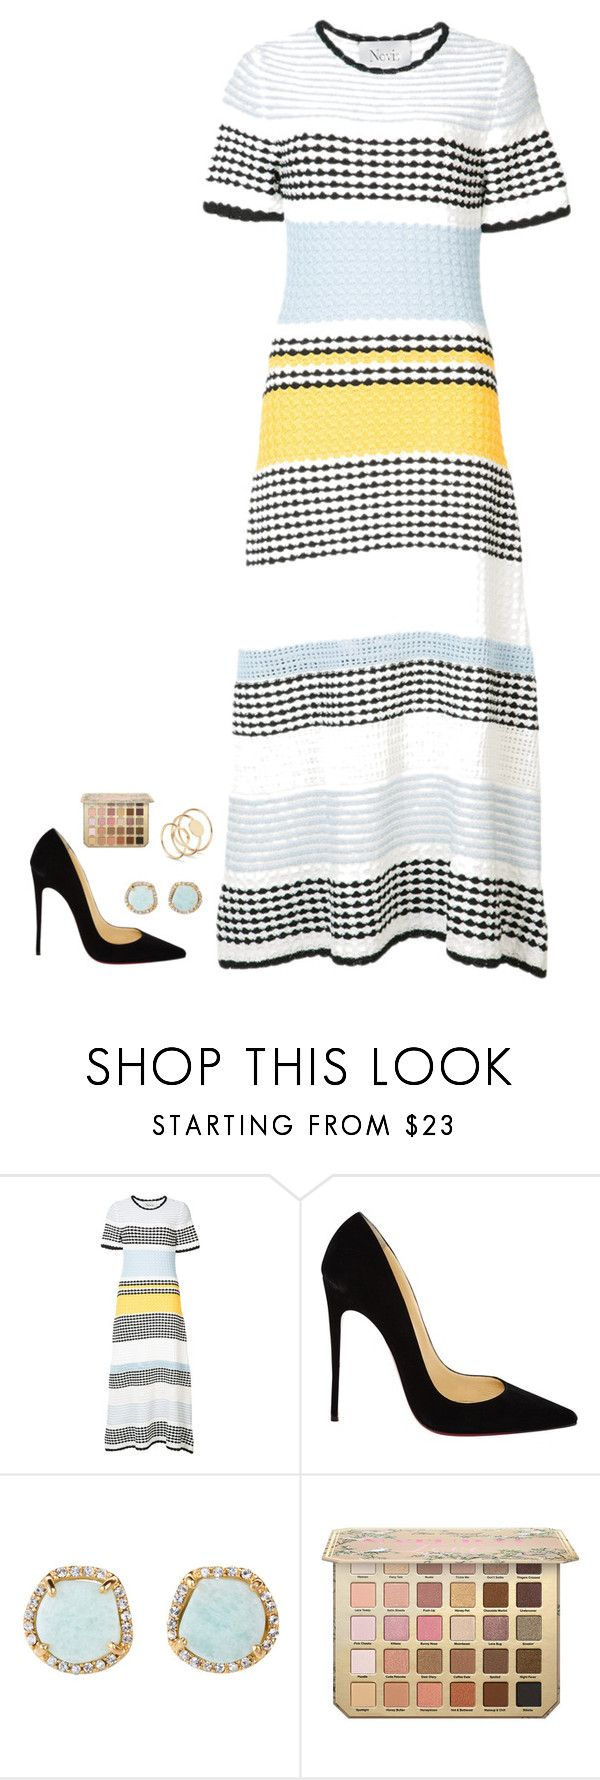 Untitled #1187 by h1234l on Polyvore featuring Novis, Christian Louboutin and Louise et Cie